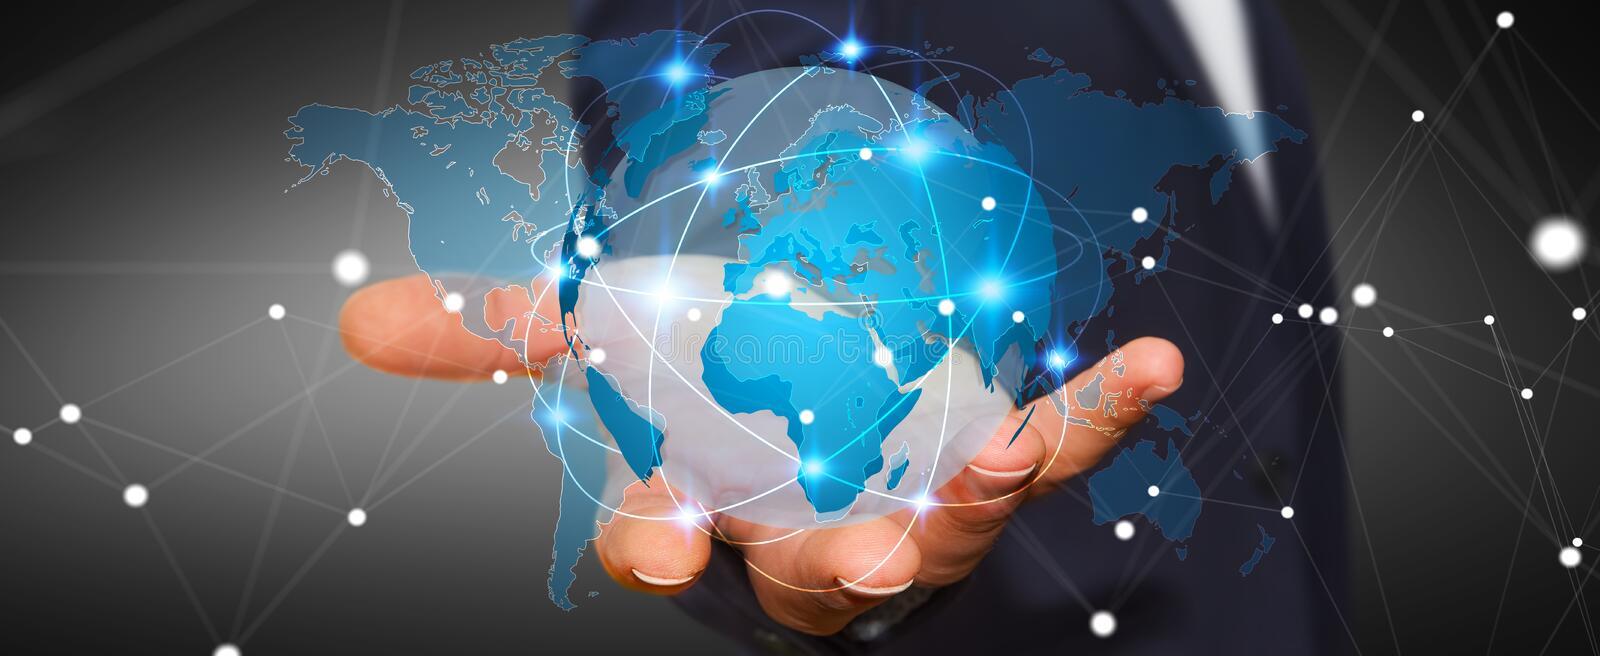 Businessman holding global network on planet earth 3D rendering stock illustration